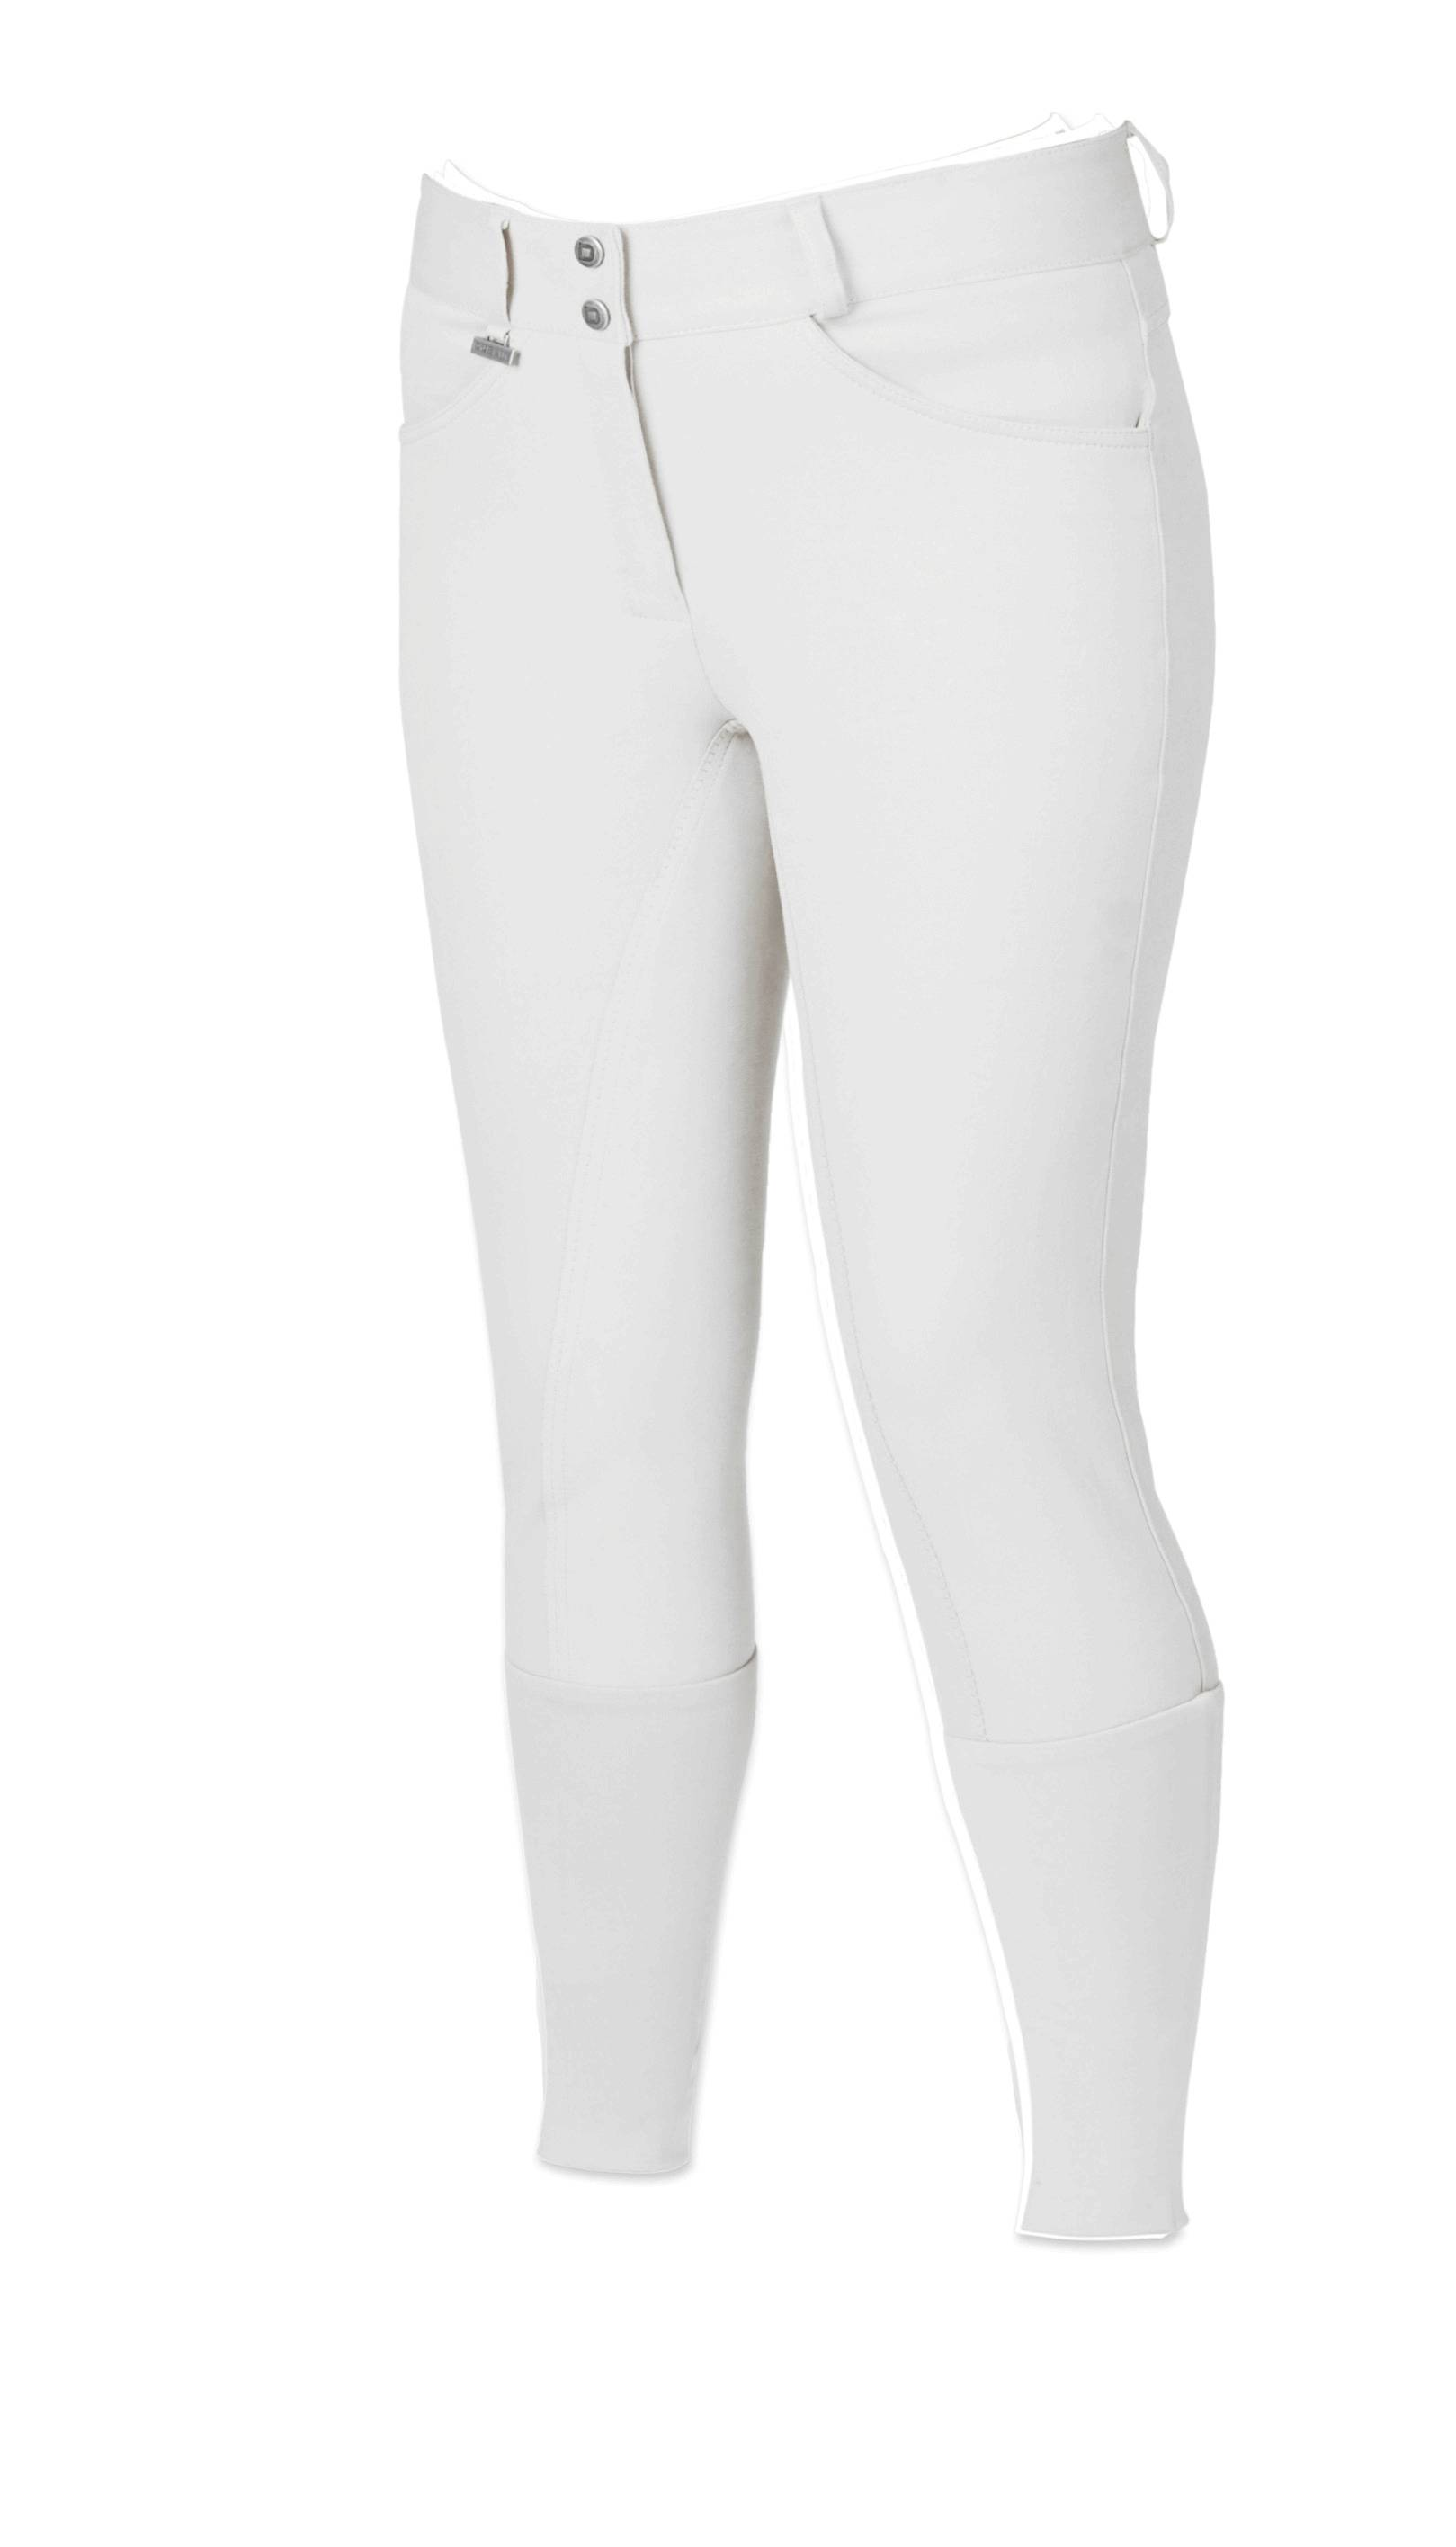 Dublin Active Signature Breeches - Ladies, Full Seat